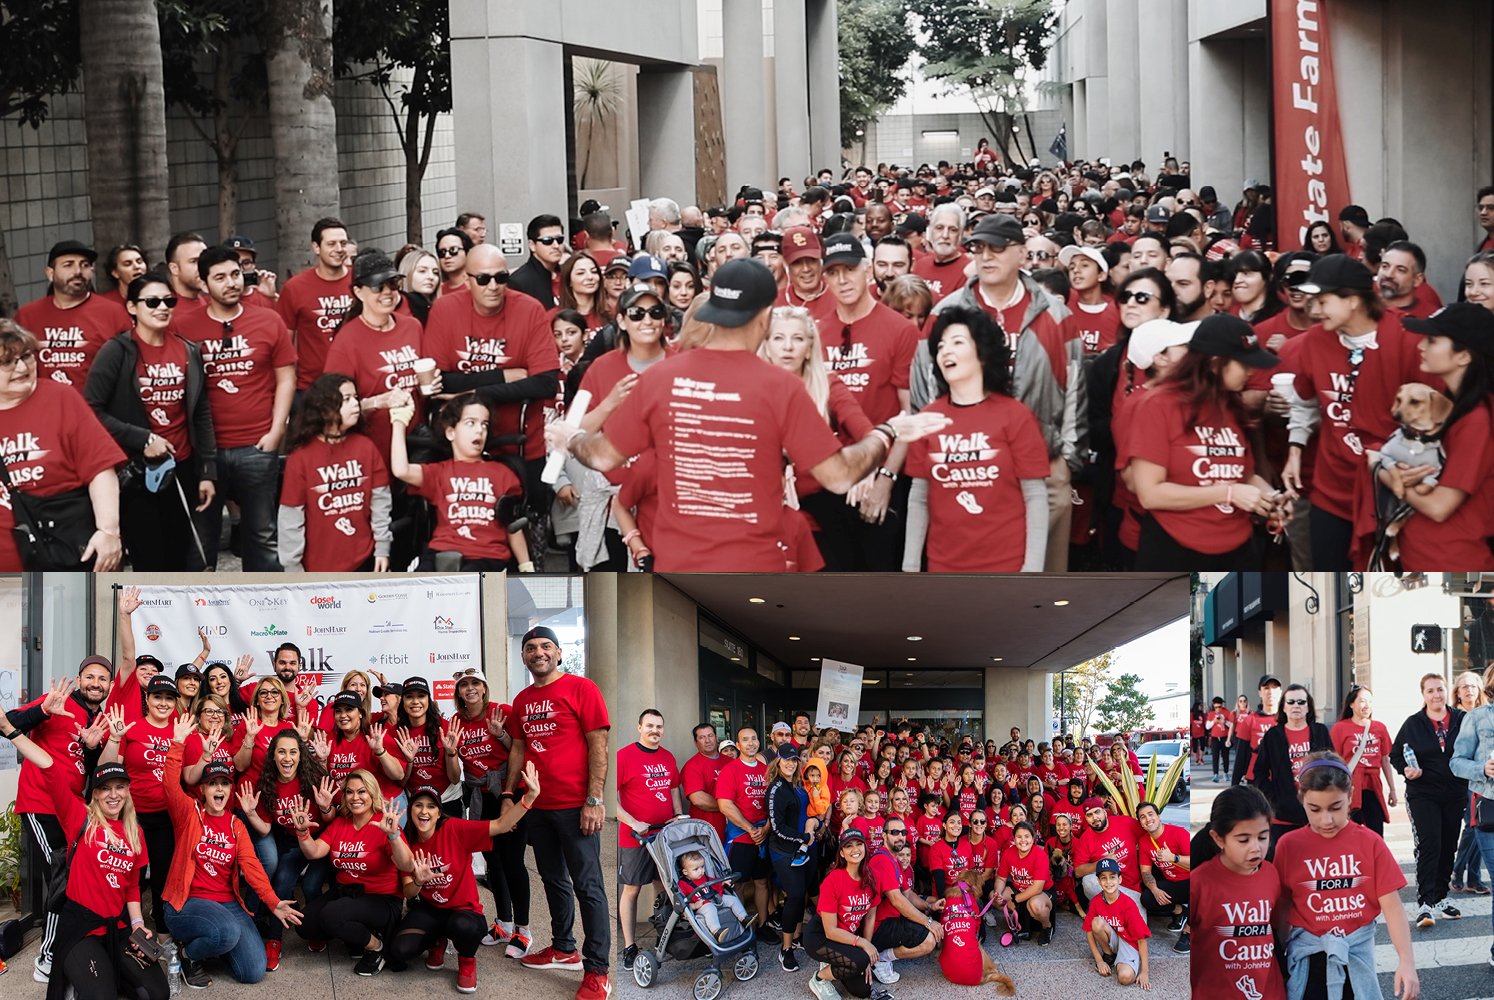 JohnHart agents, staff, family, and friends gathered to Walk For A Cause in Glendale, CA on October 19, 2019